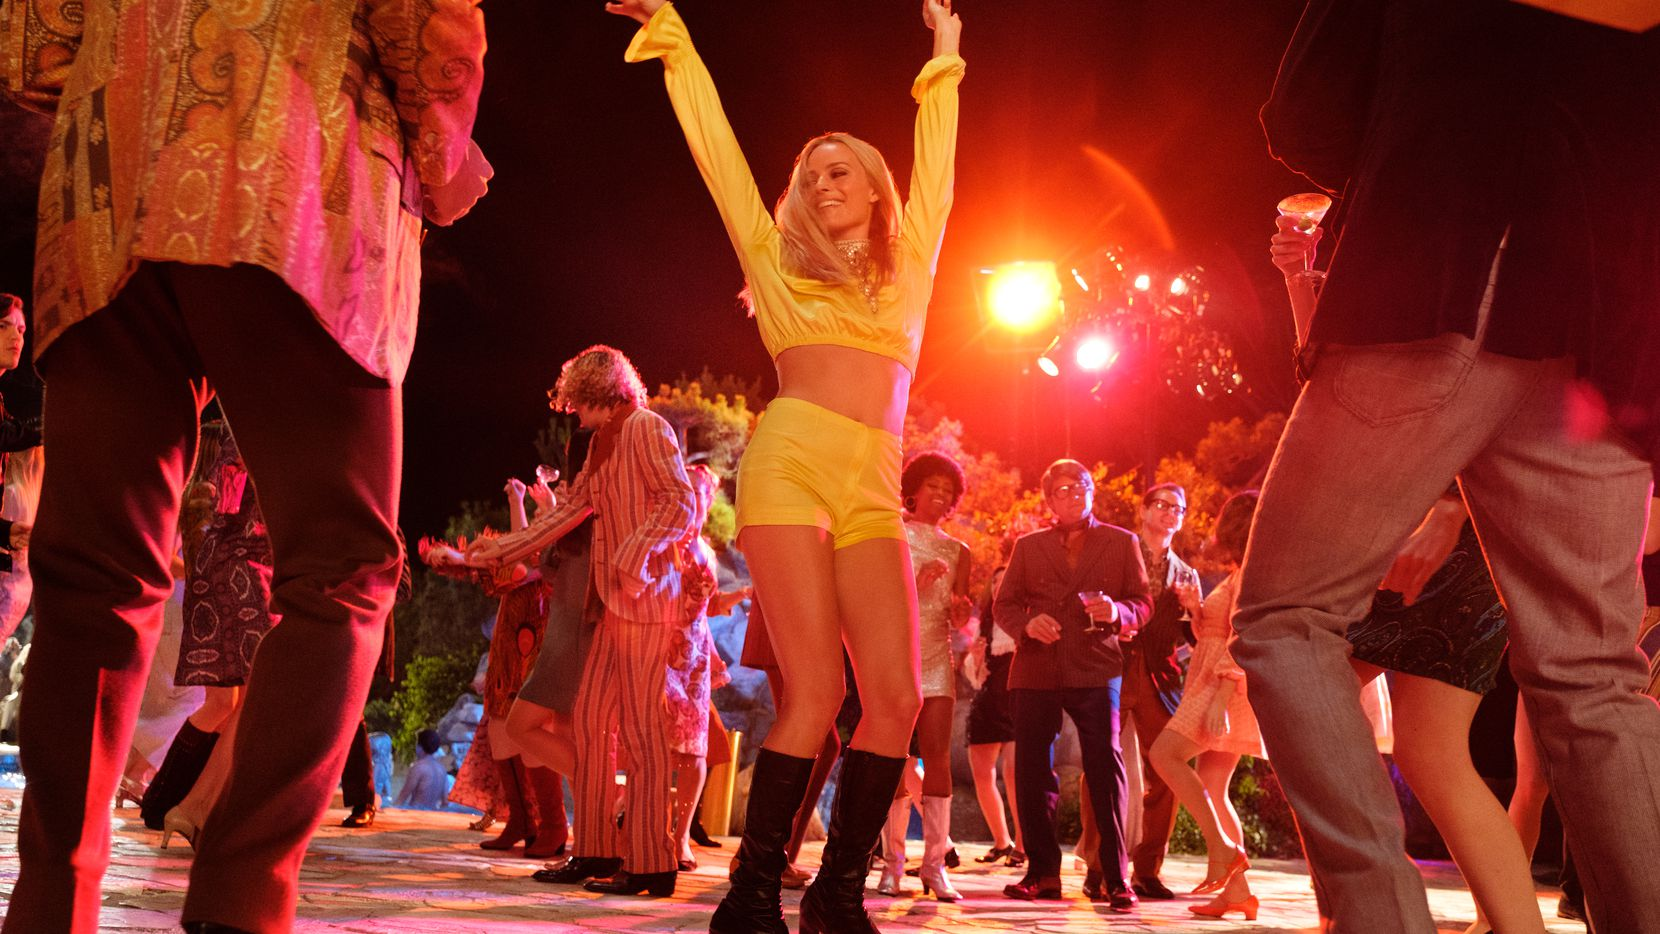 Margot Robbie stars as actress Sharon Tate in the movie, 'Once Upon a Time ... in Hollywood.'